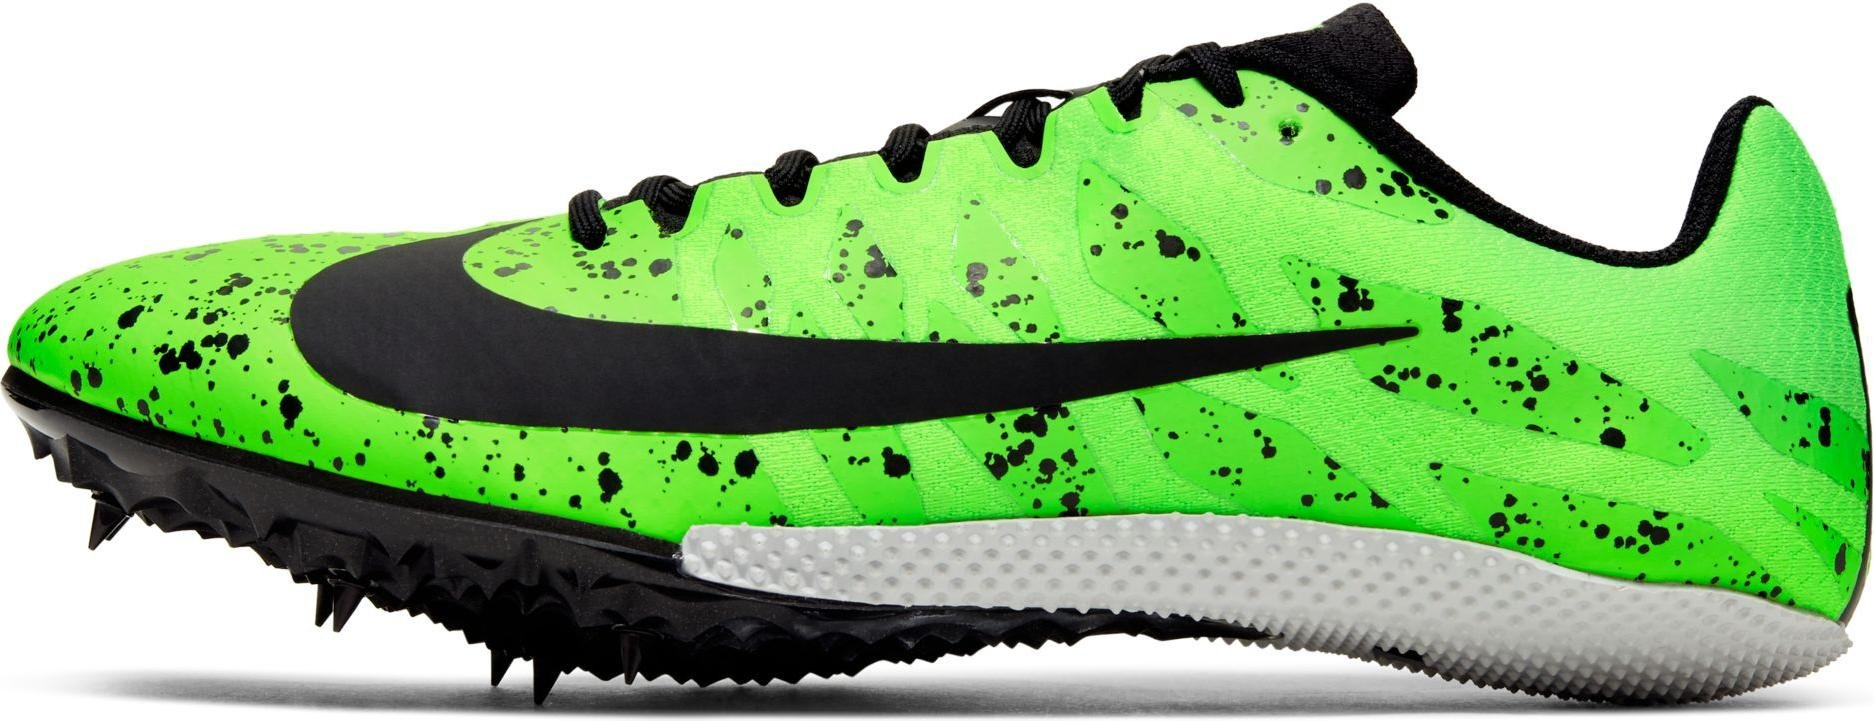 Retocar Retirarse fractura  Track shoes/Spikes Nike ZOOM RIVAL S 9 - Top4Running.com